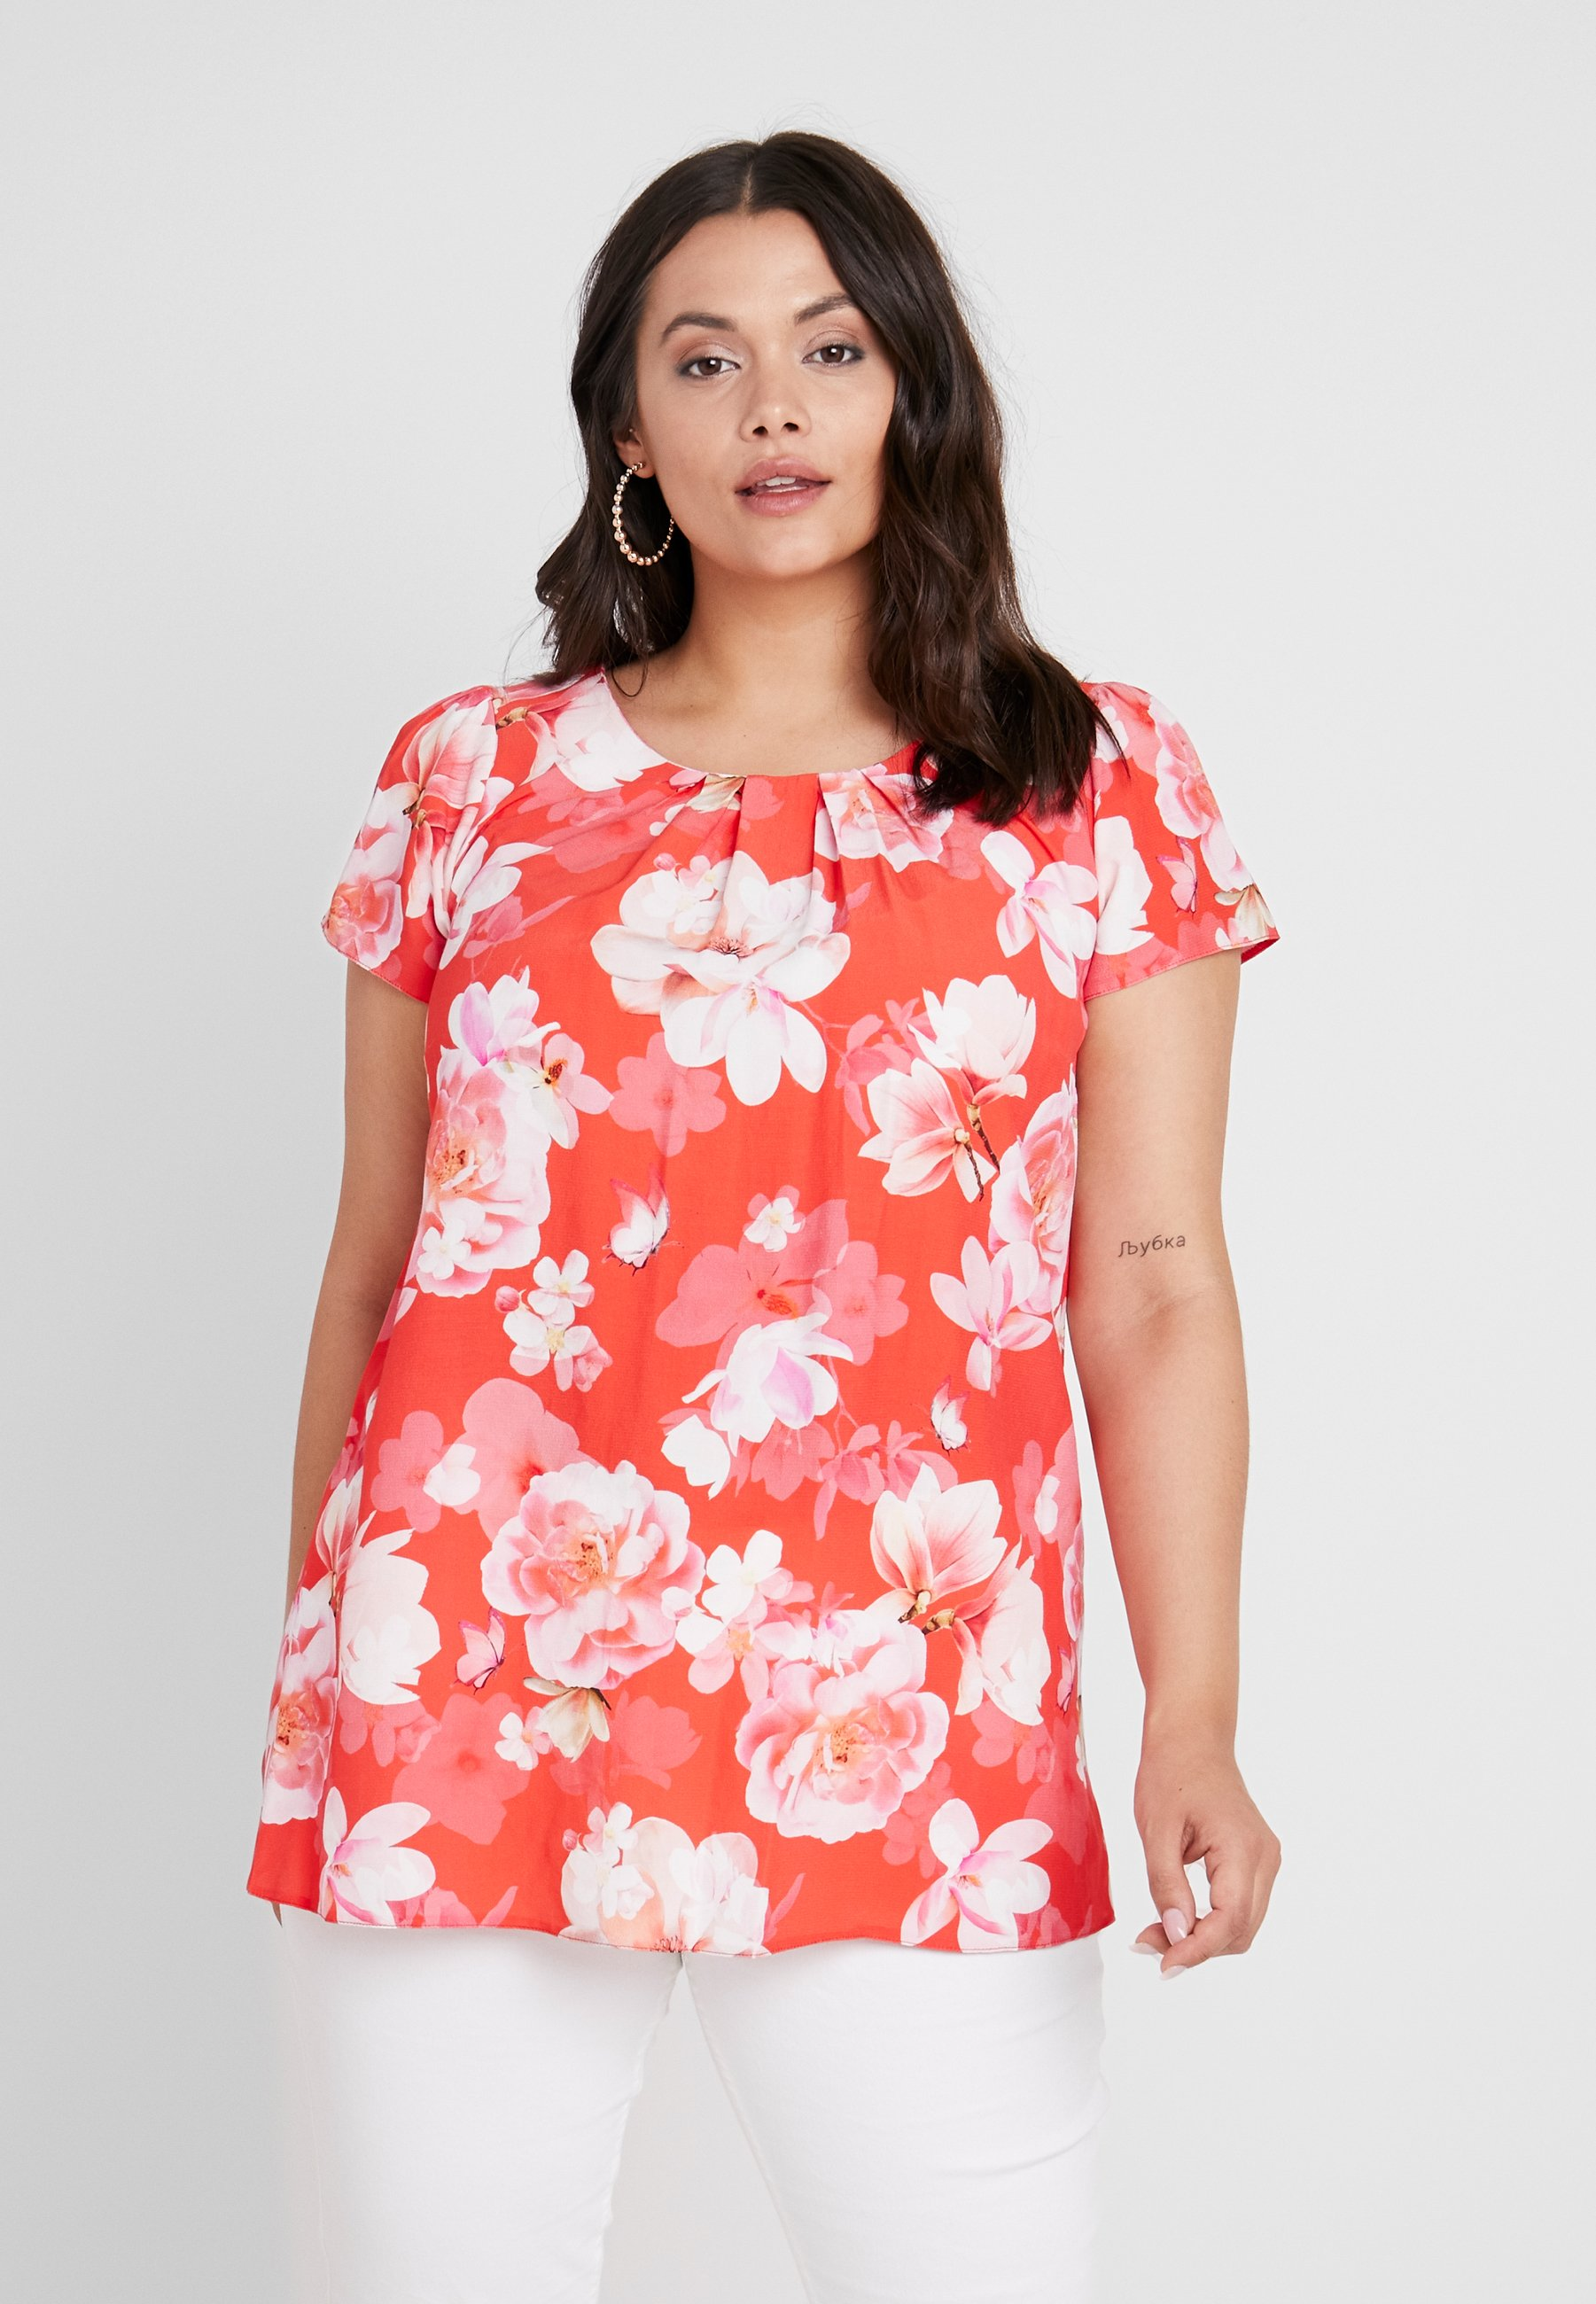 Evans FLORAL SHELL - Blouse coral